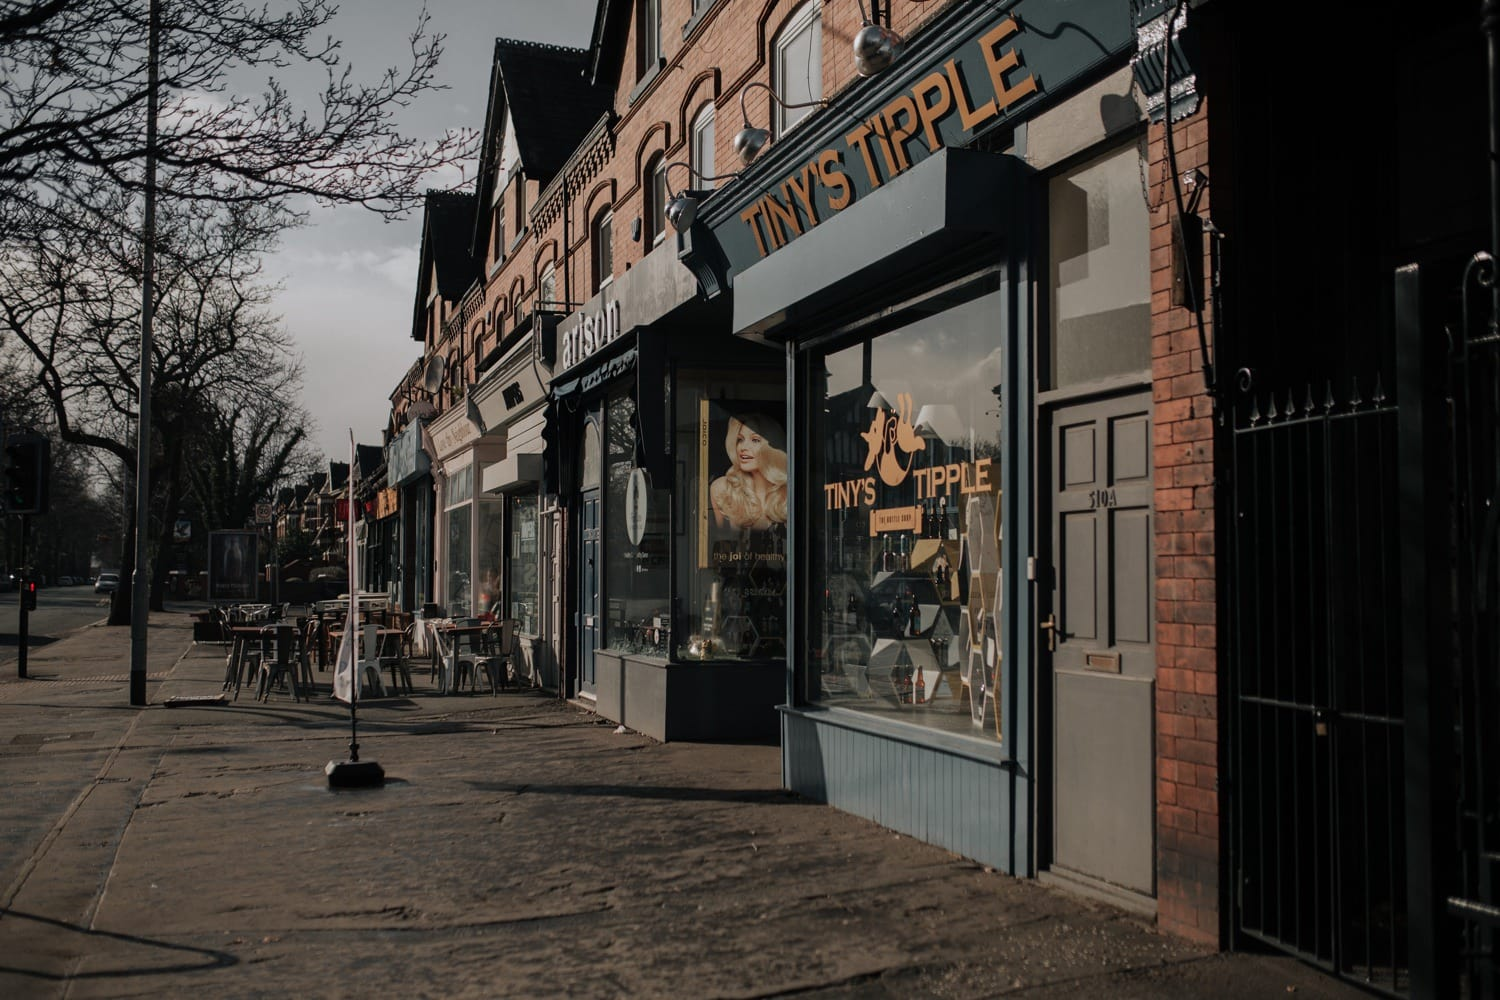 Shops on Chorlton streets